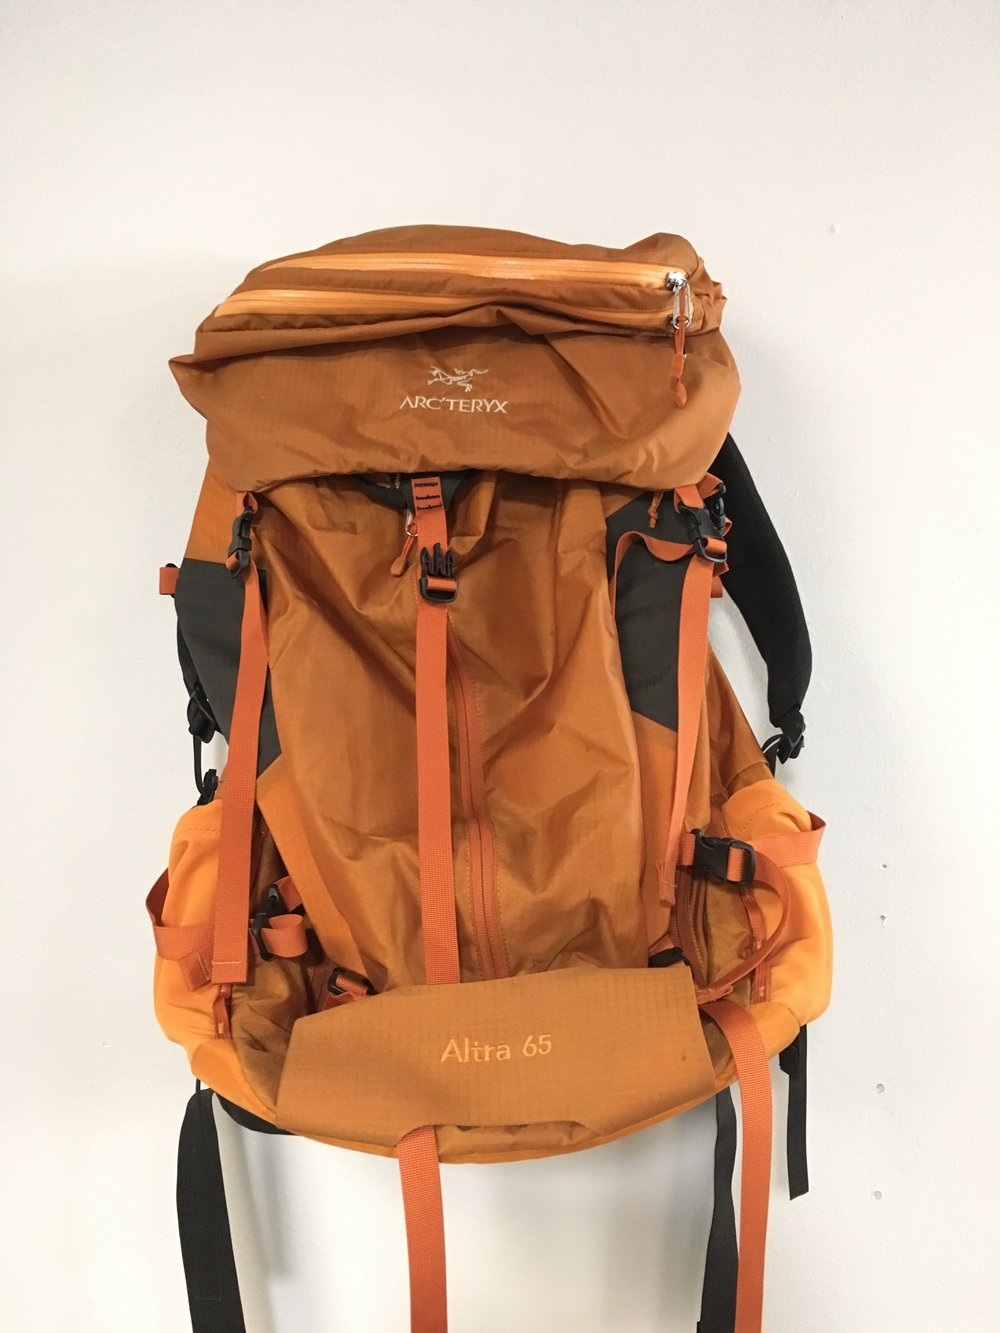 Get trekking with Arcteryx's Altra 65! The Altra features the highest quality materials that a  backpack can have and can keep the biggest pack rat organized. Retail for the pack is listed at $475 but we have it priced at $224!